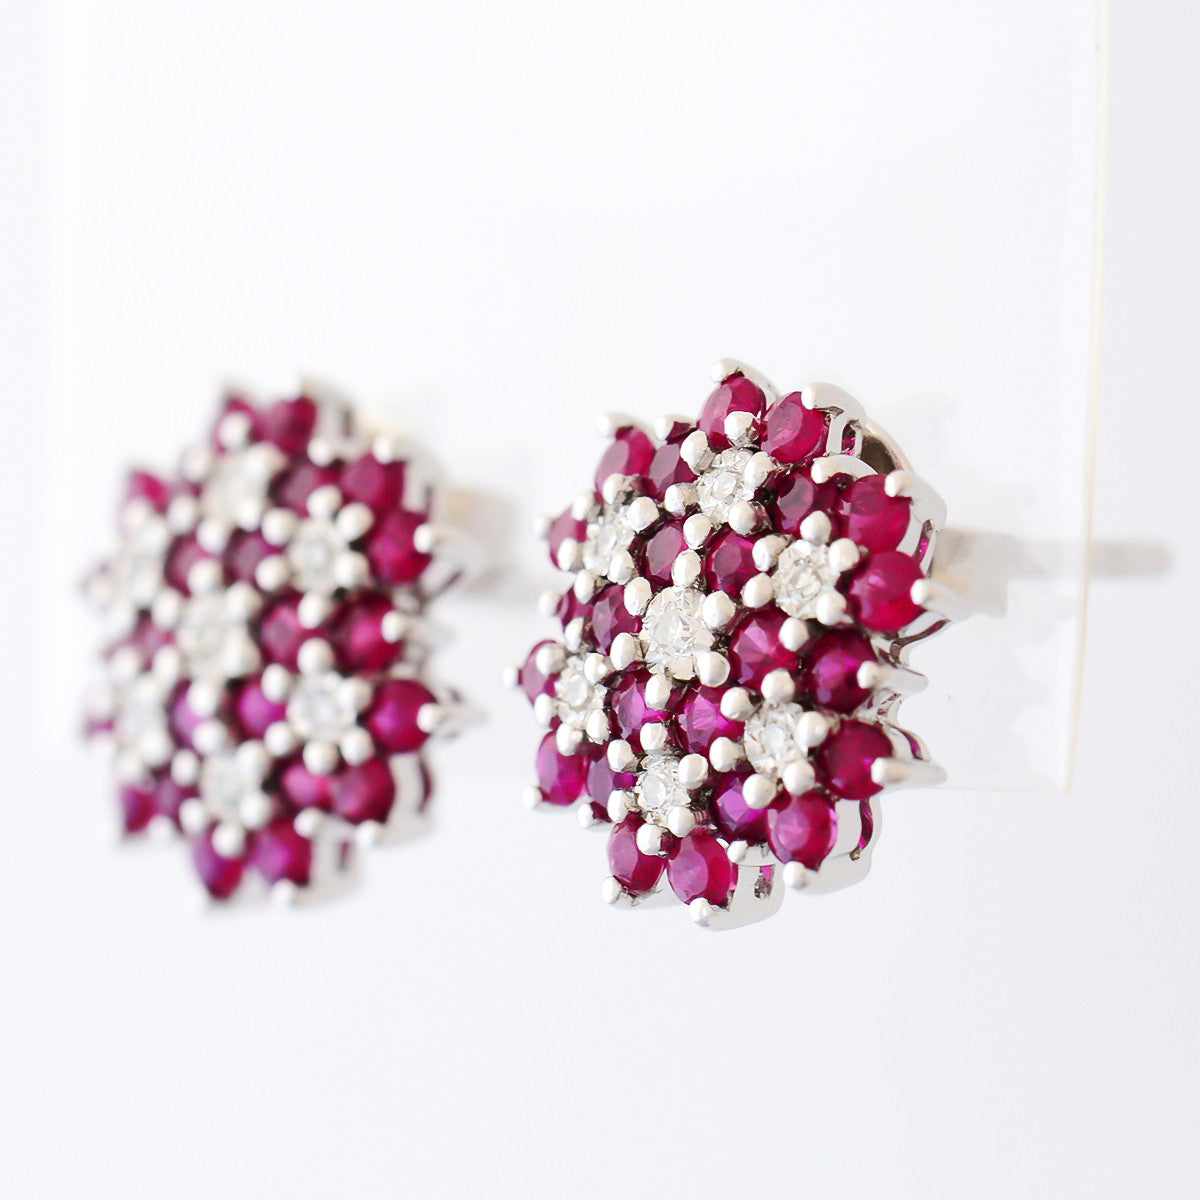 9k Solid White Gold 120ct Natural Ruby Cluster Earrings With 14 Diamonds